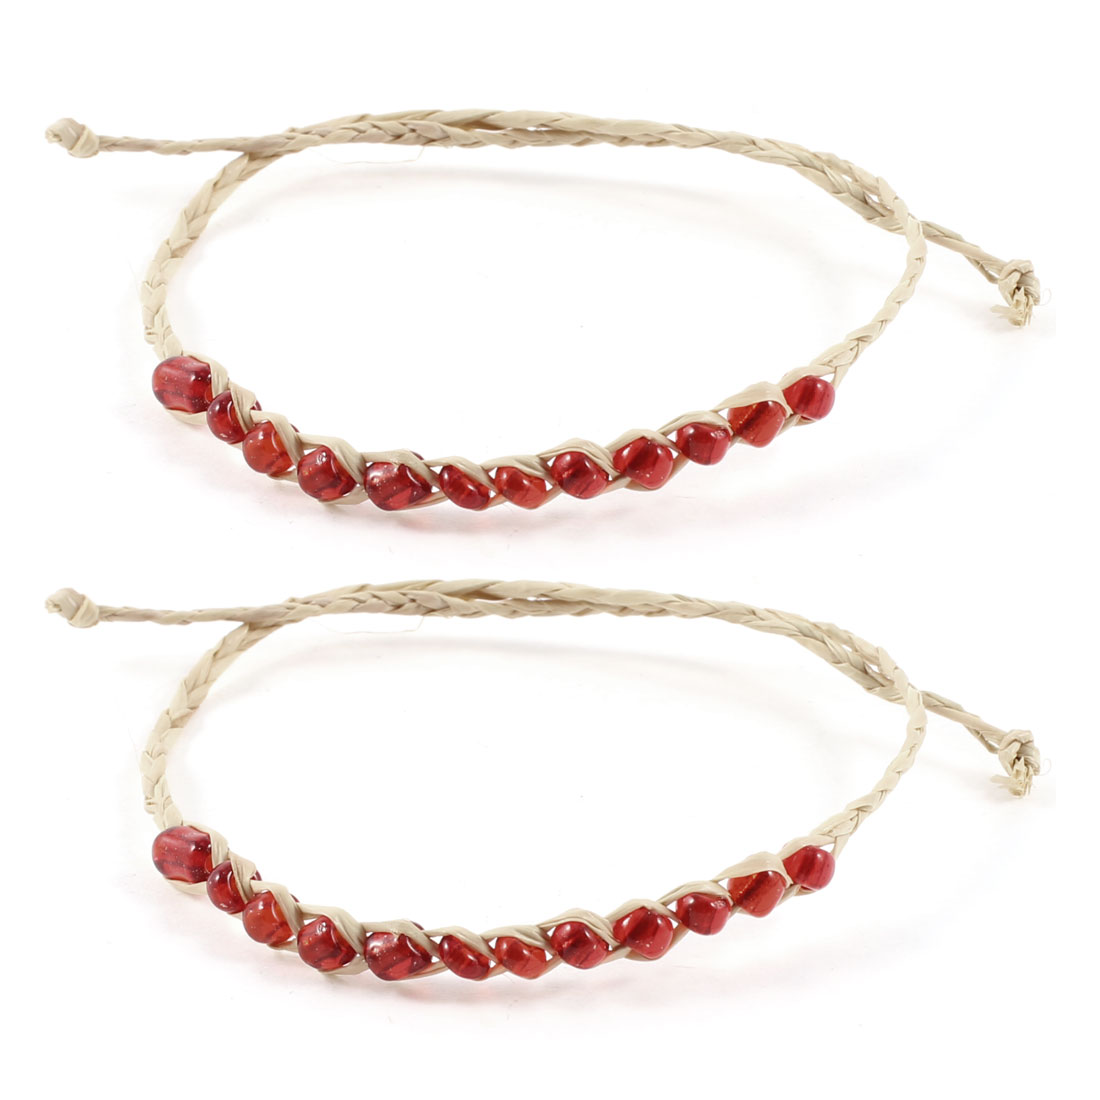 Girl Red Beige Glitter Beads Accent Straw Bracelets Wrist Ornament 2 Pcs